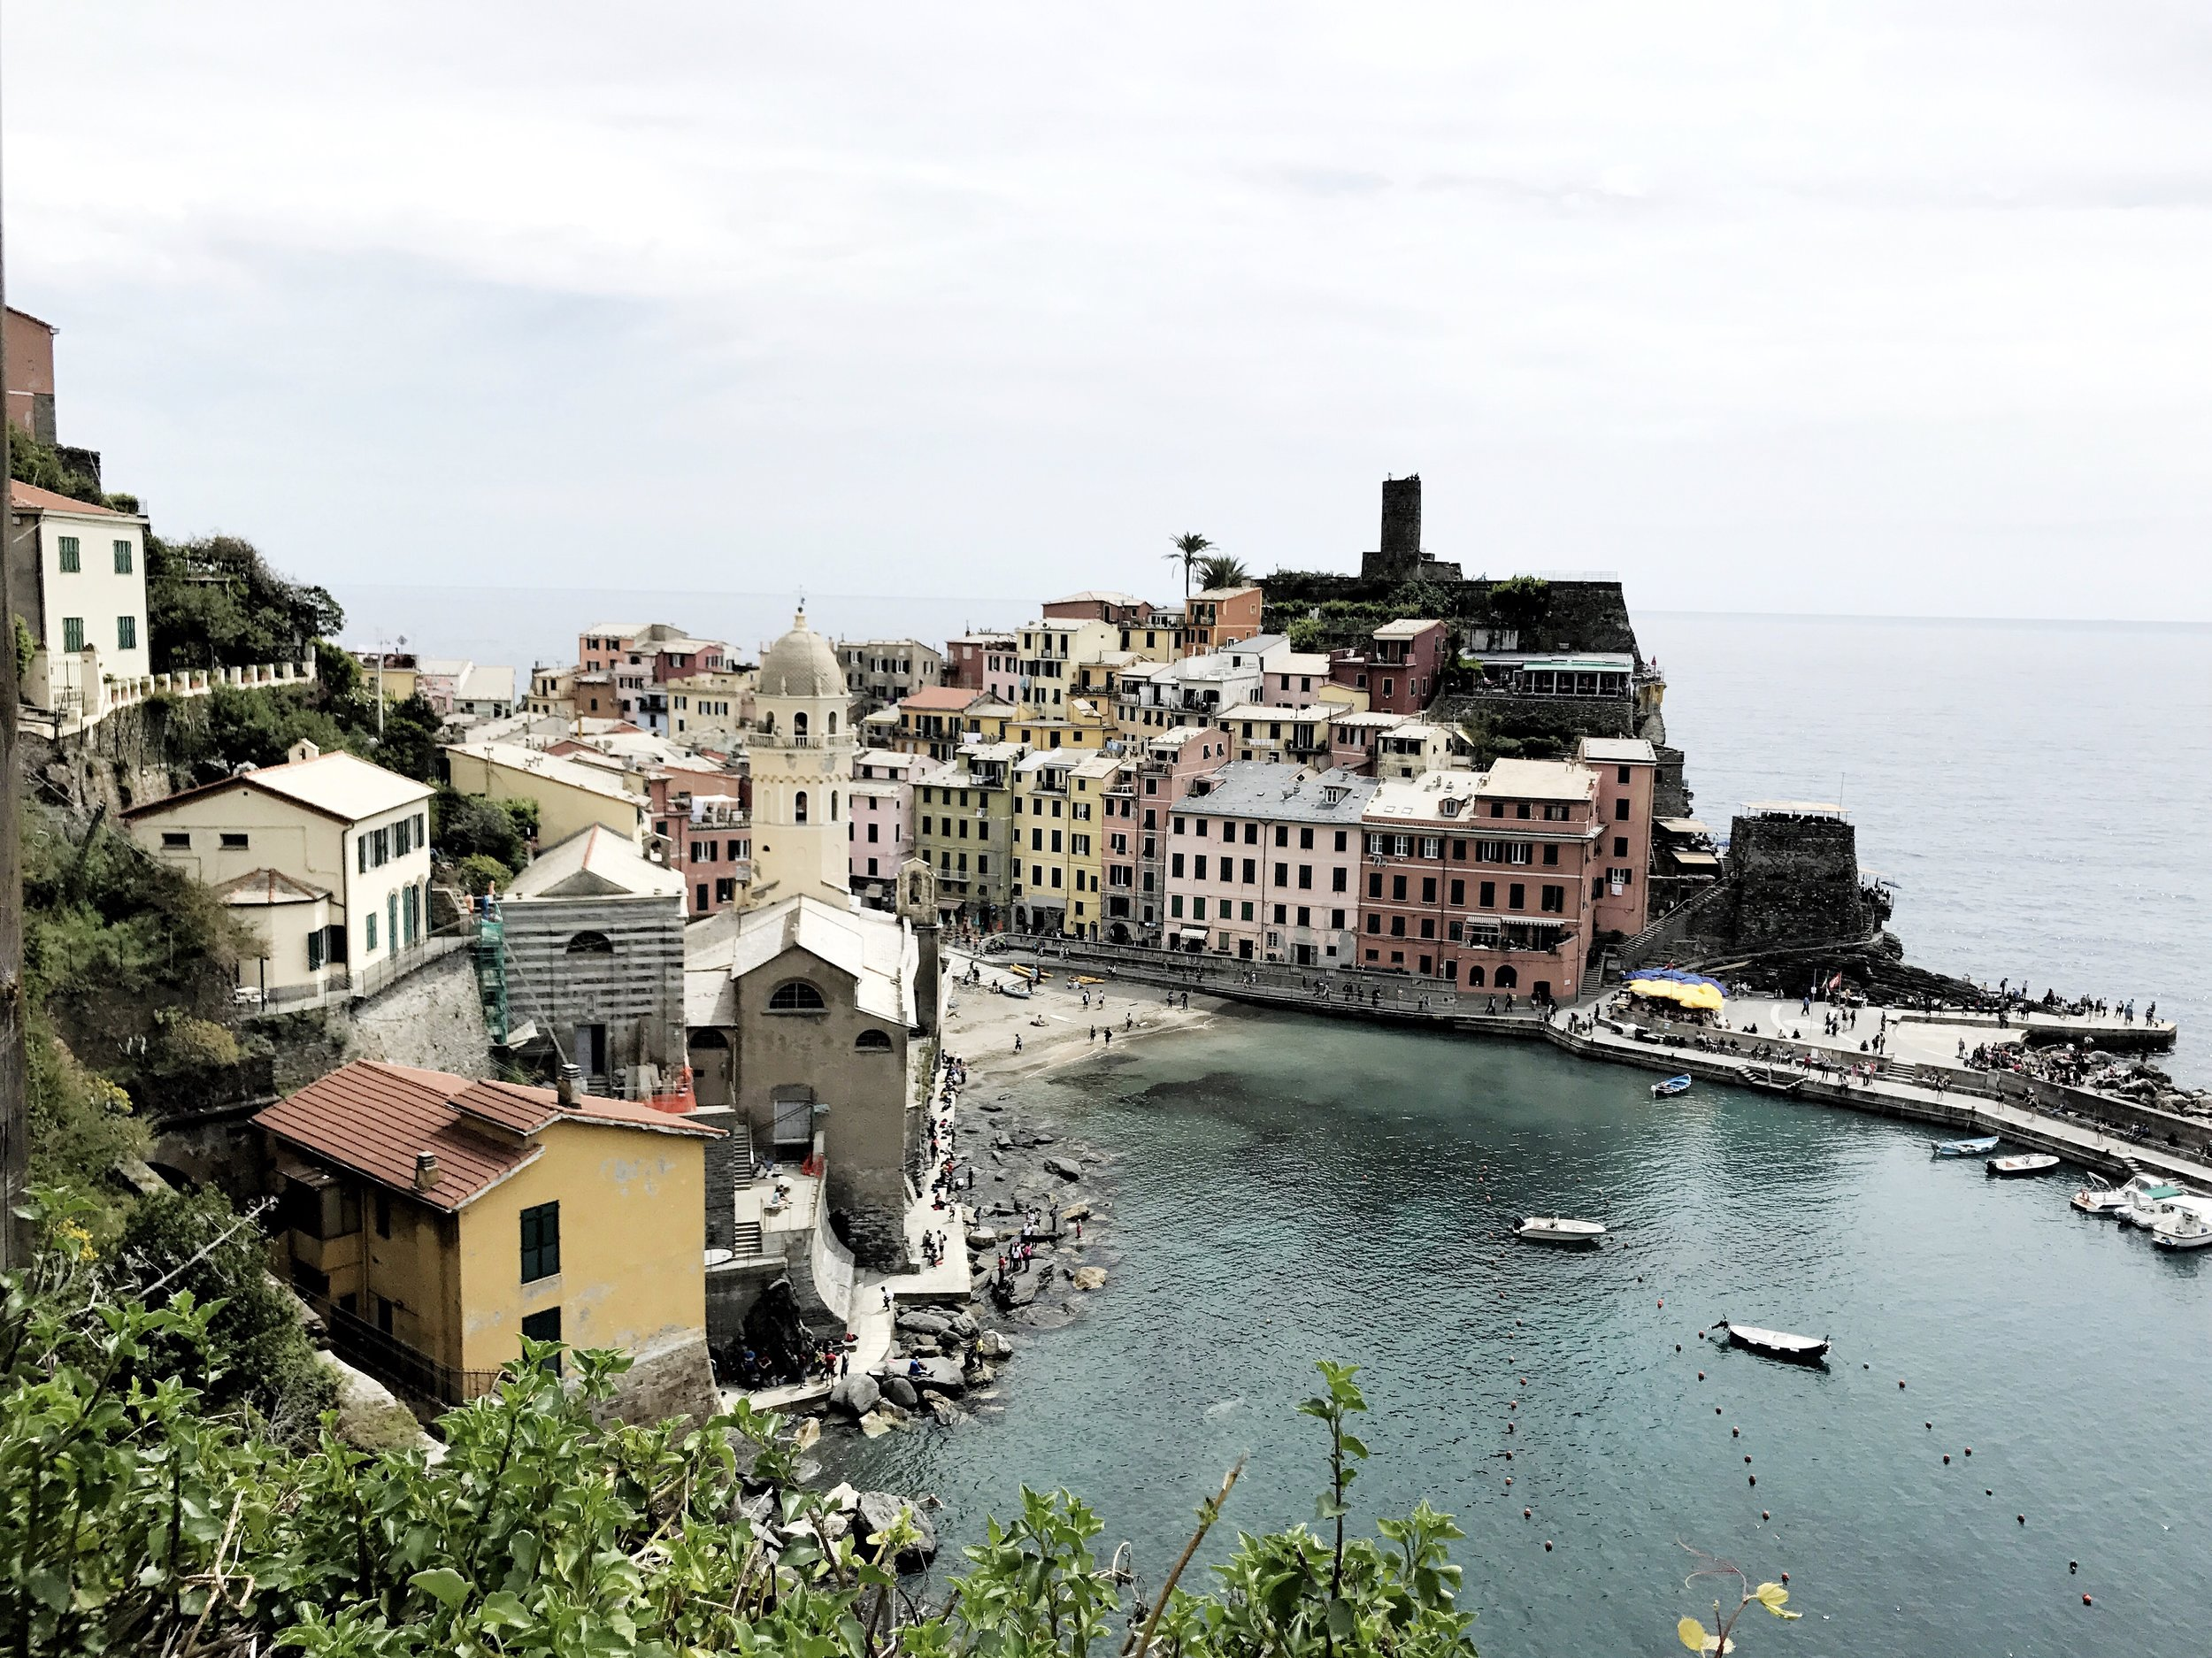 City of Vernazza, one of the five villages in Cinque Terre, Italy